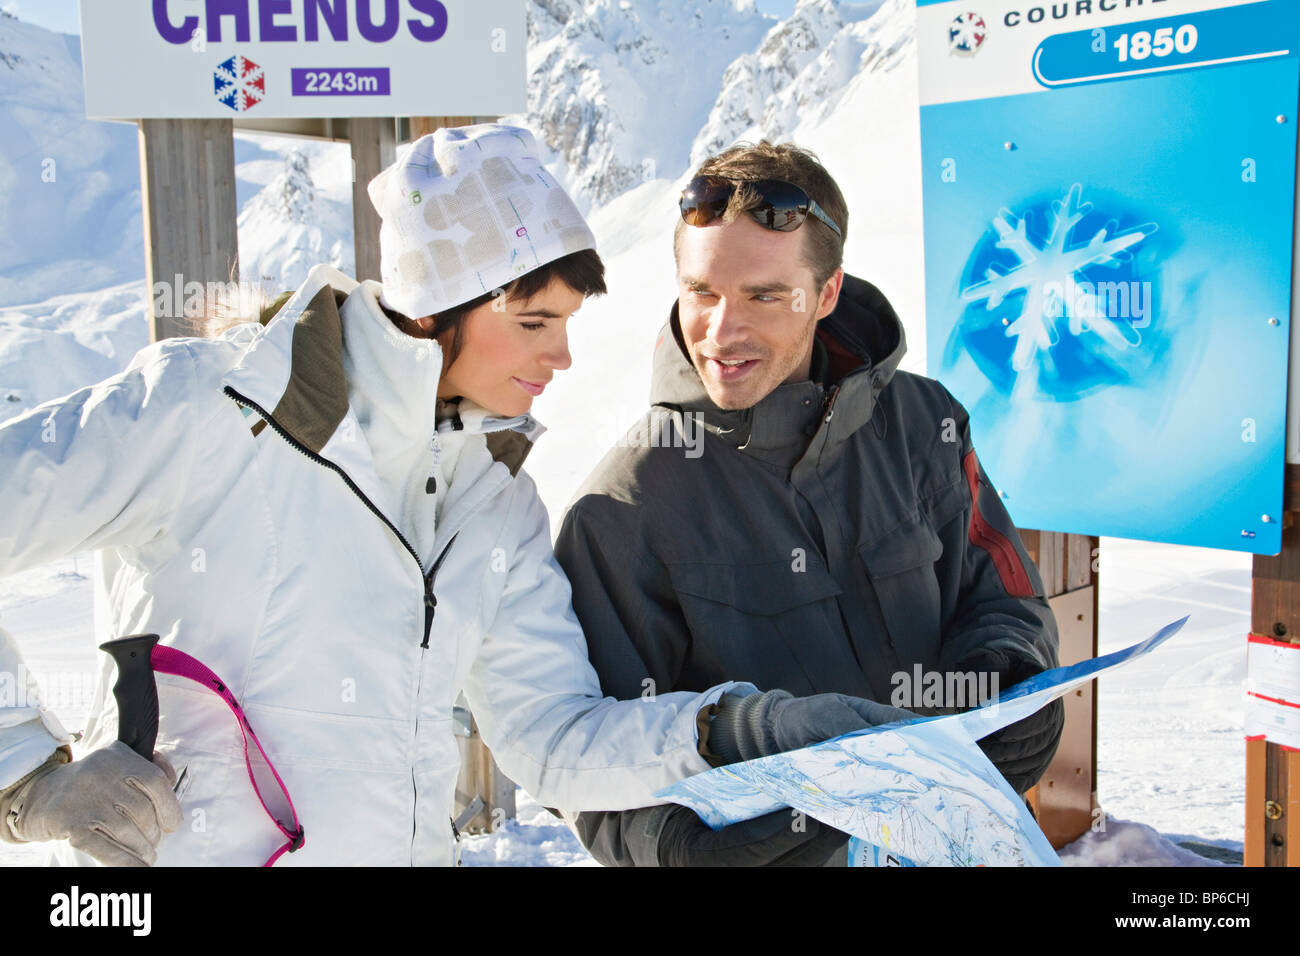 Couple of skiers looking at map, Courchevel, France - Stock Image